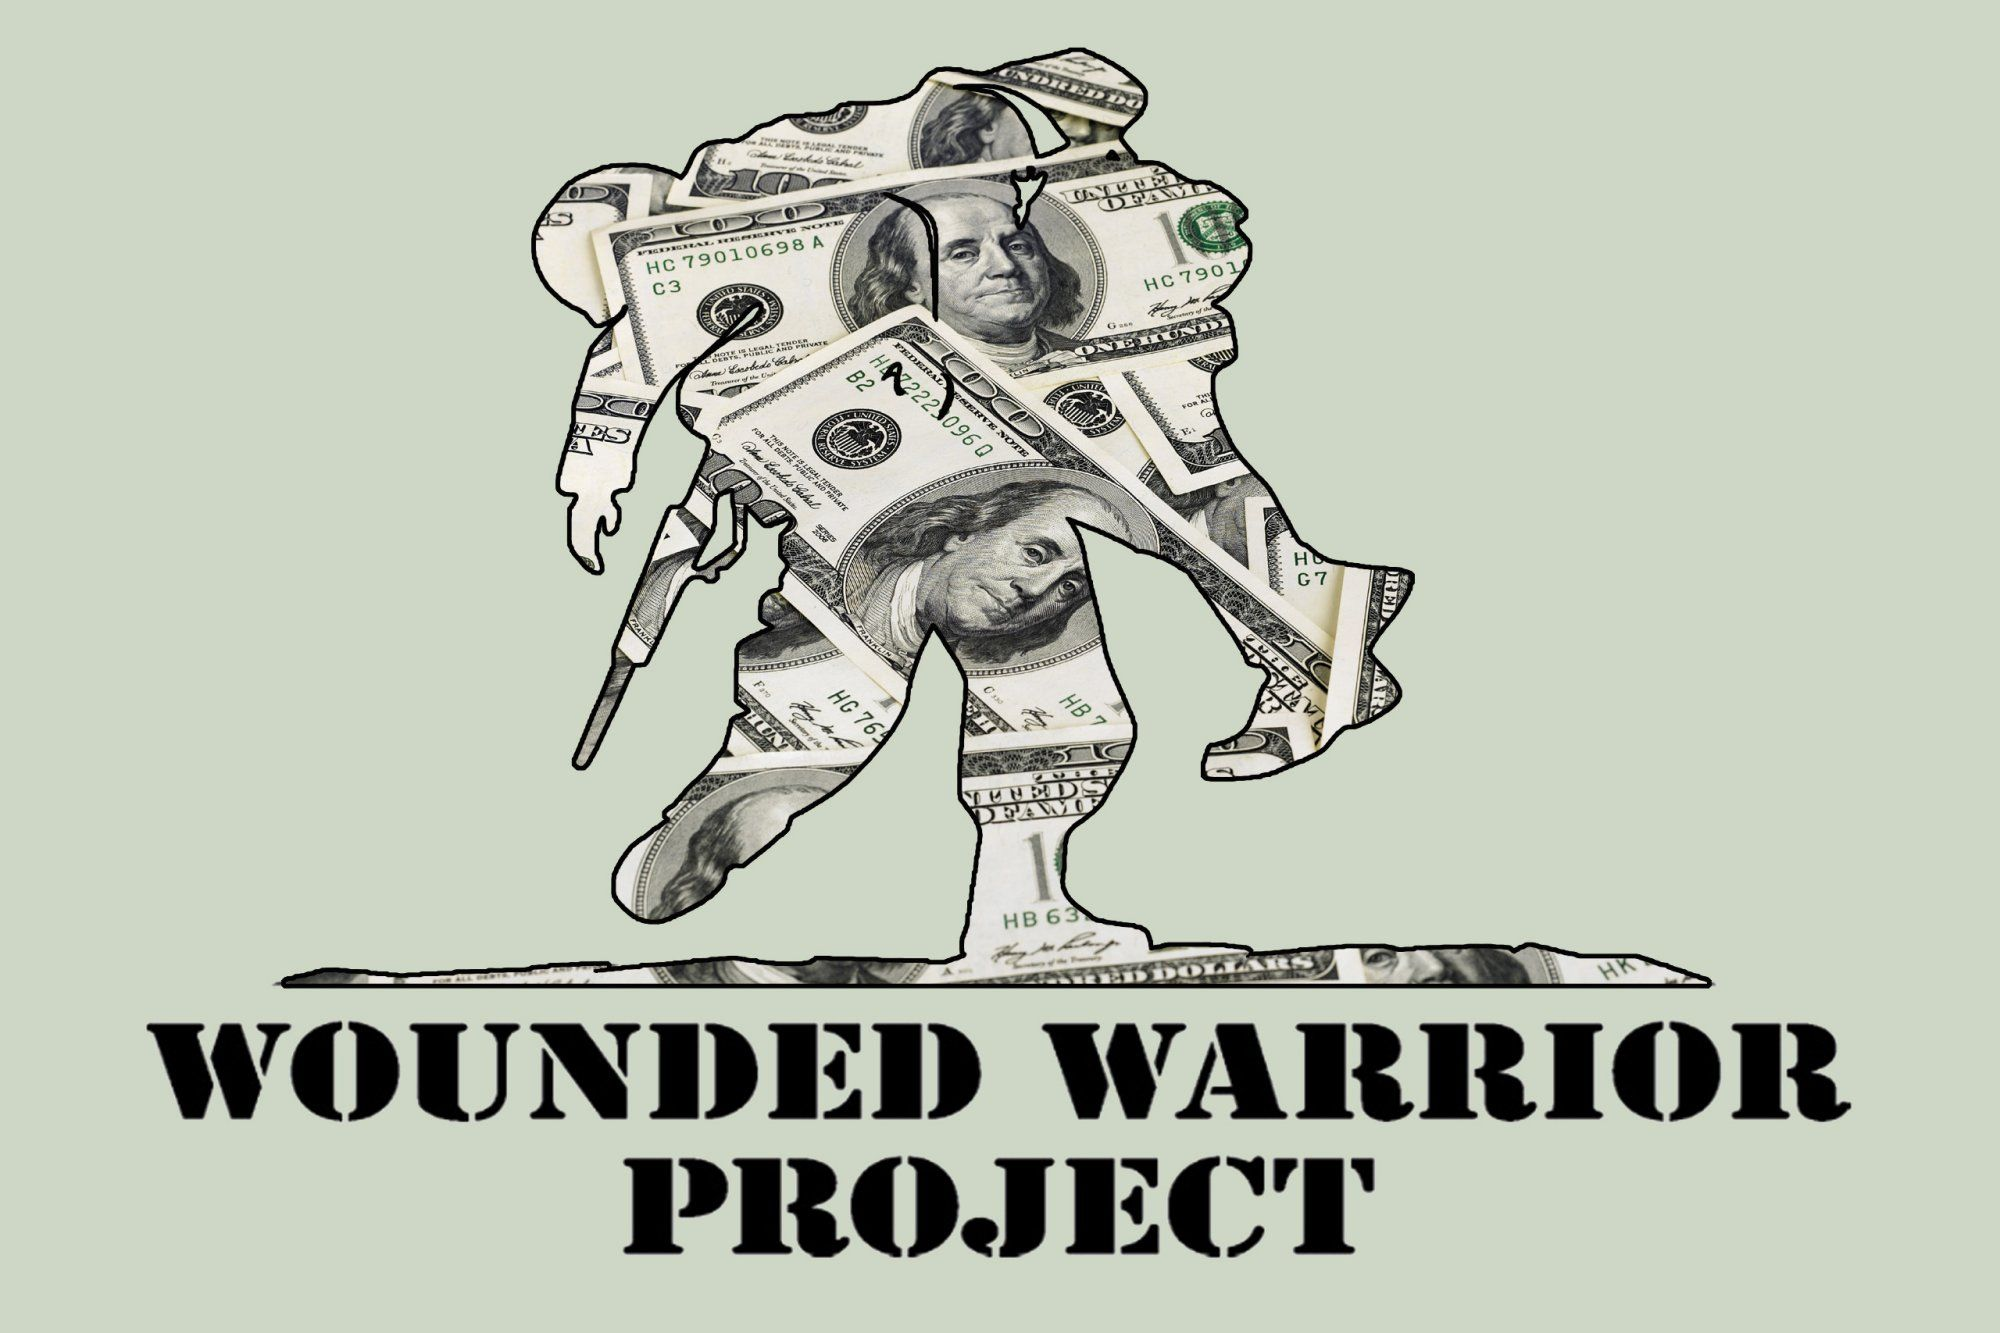 'Wounded Warrior' Charity Fights—To Get Rich Wounded